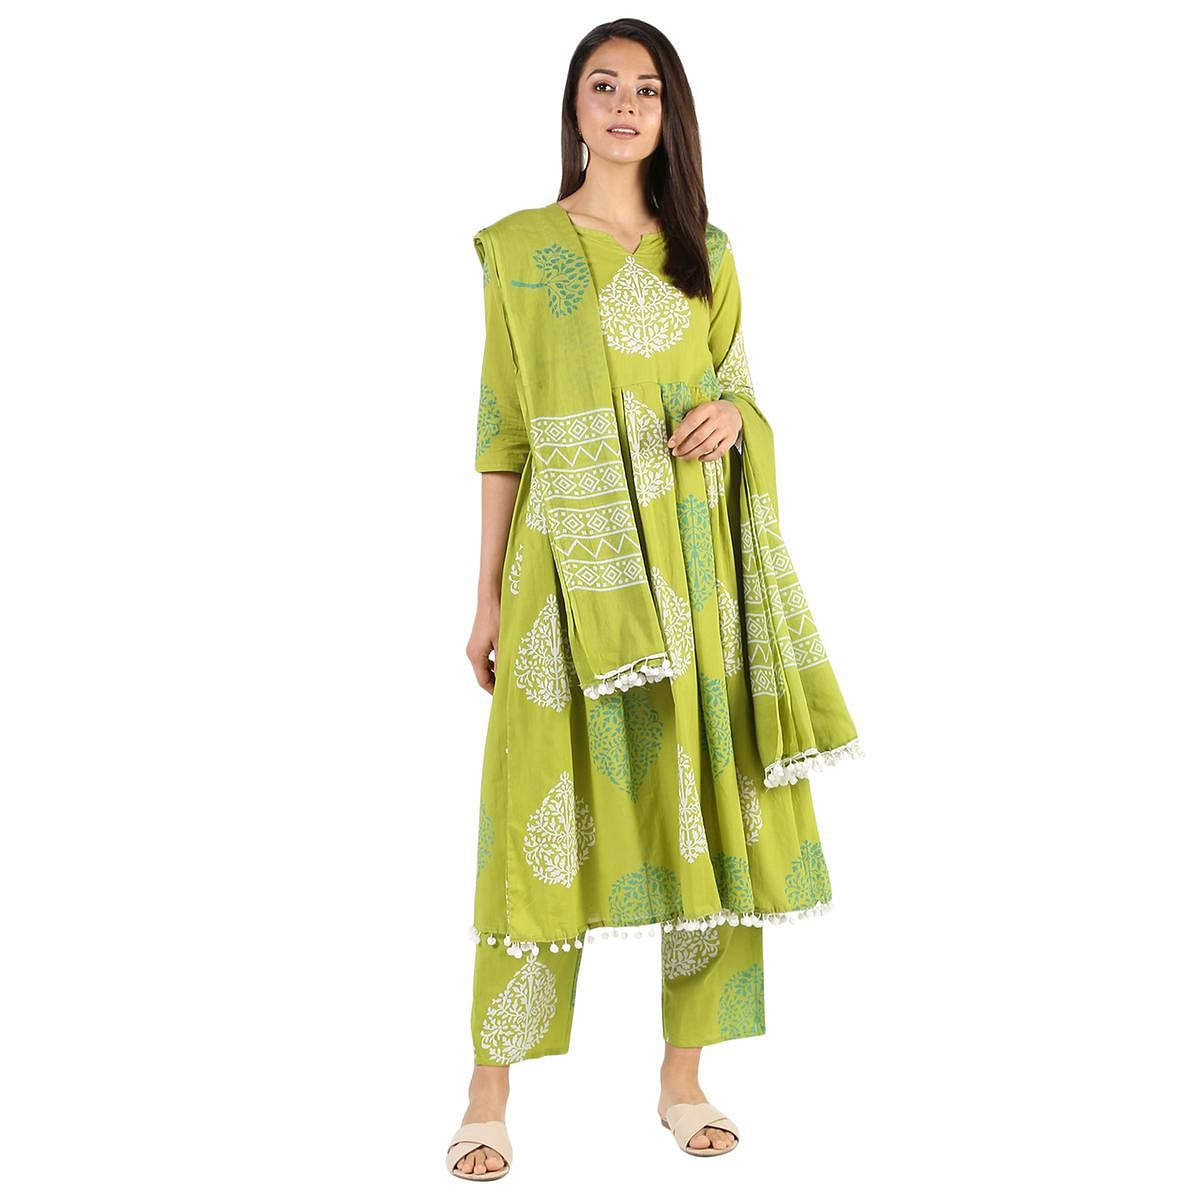 Attractive Green Colored Casual Wear Block Printed Cotton Kurti-Bottom Set With Dupatta